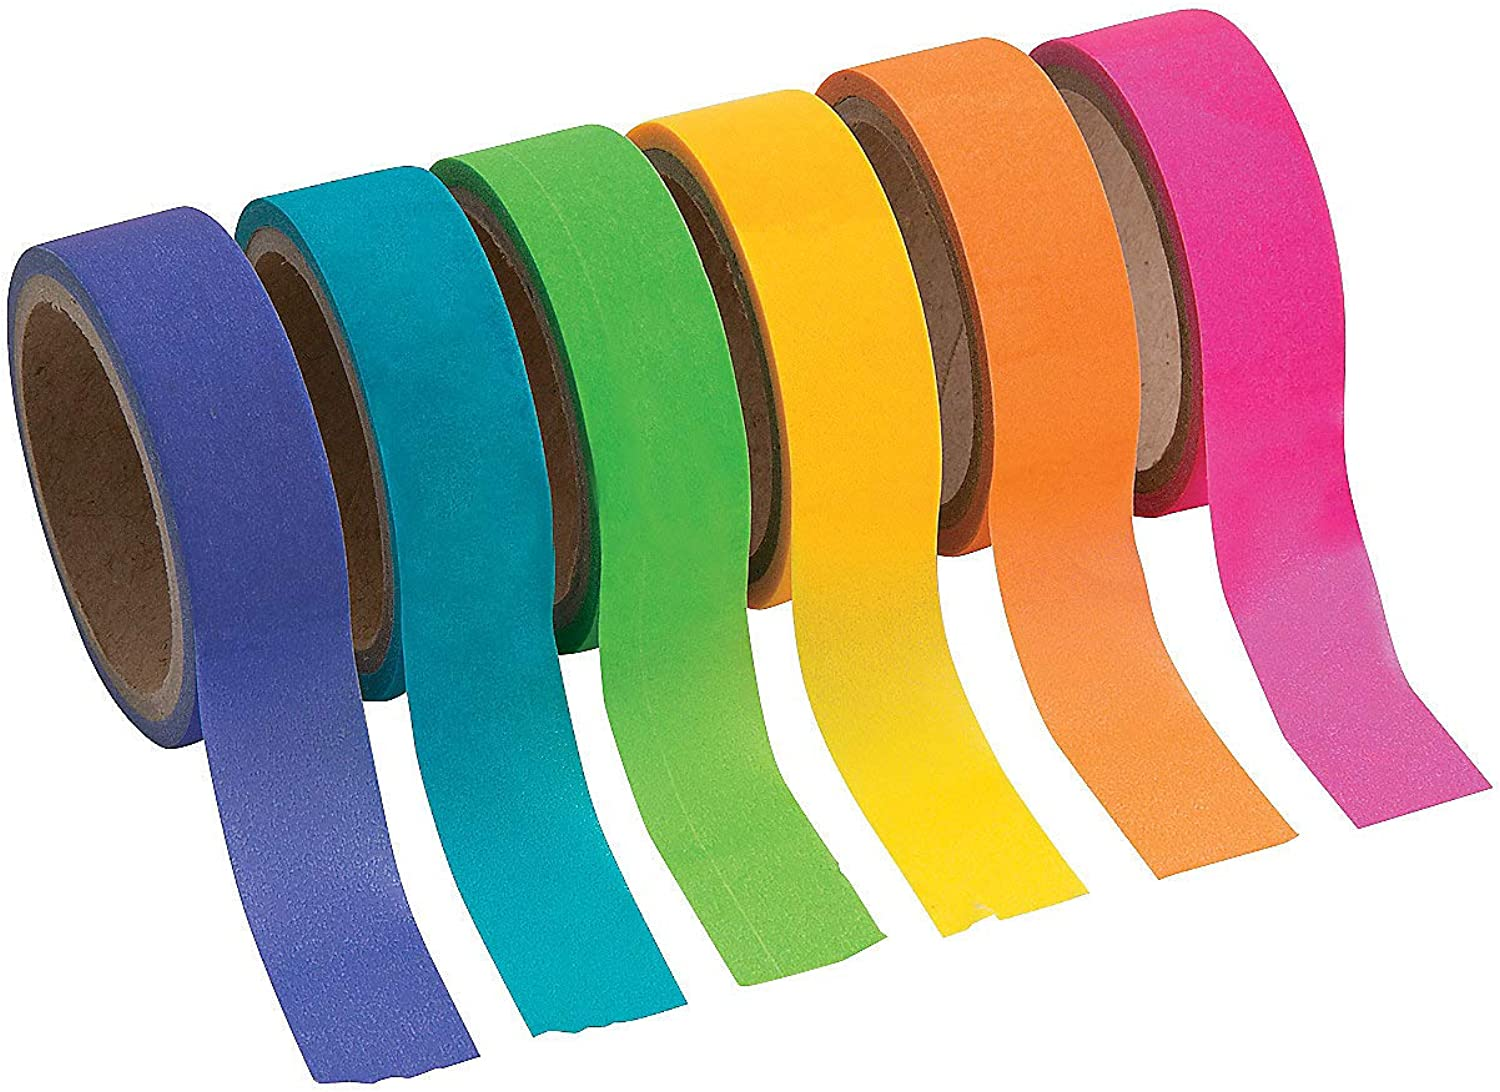 Crafts for Kids and Fun Home Activities Neon Washi Tape